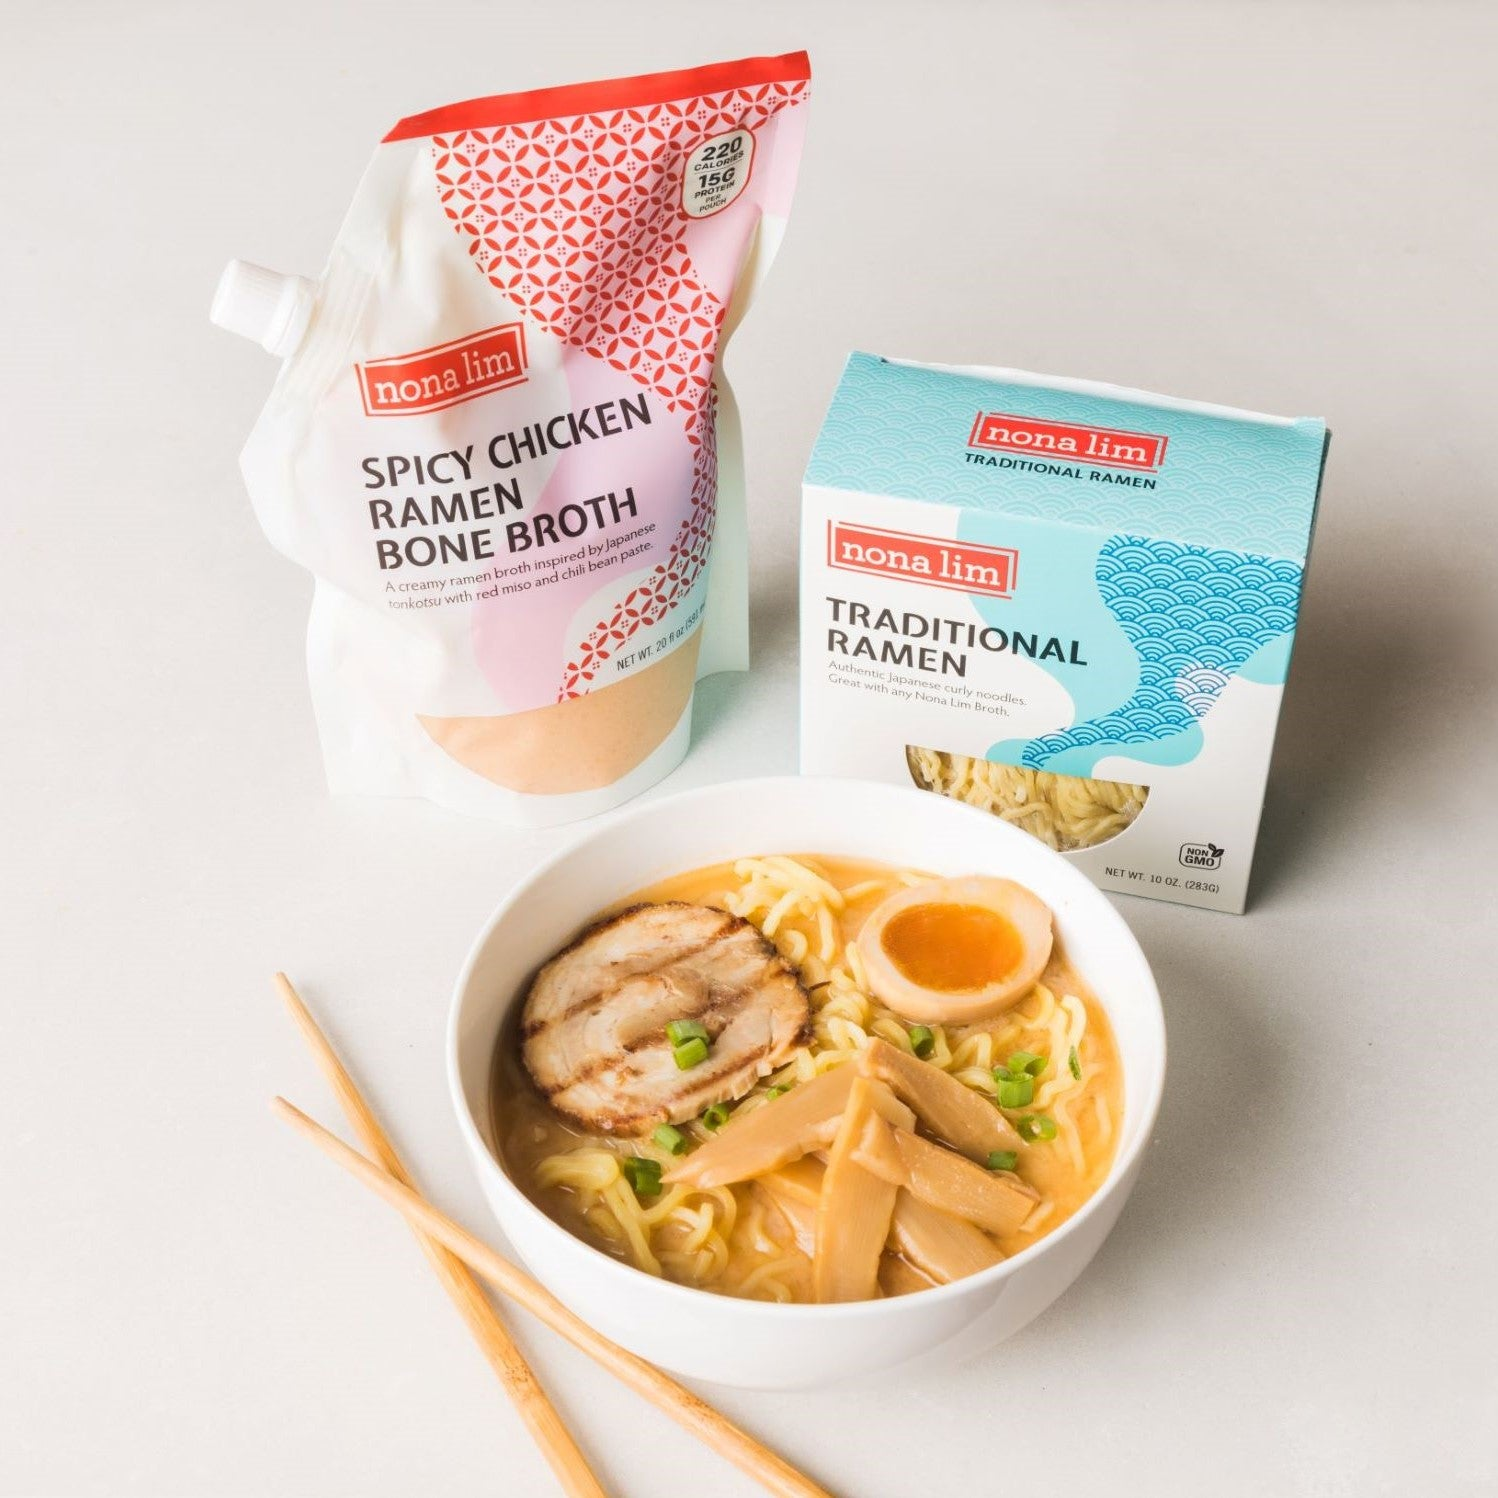 Nona Lim Spicy Chicken Ramen Bone Broth and fresh traditional ramen noodles